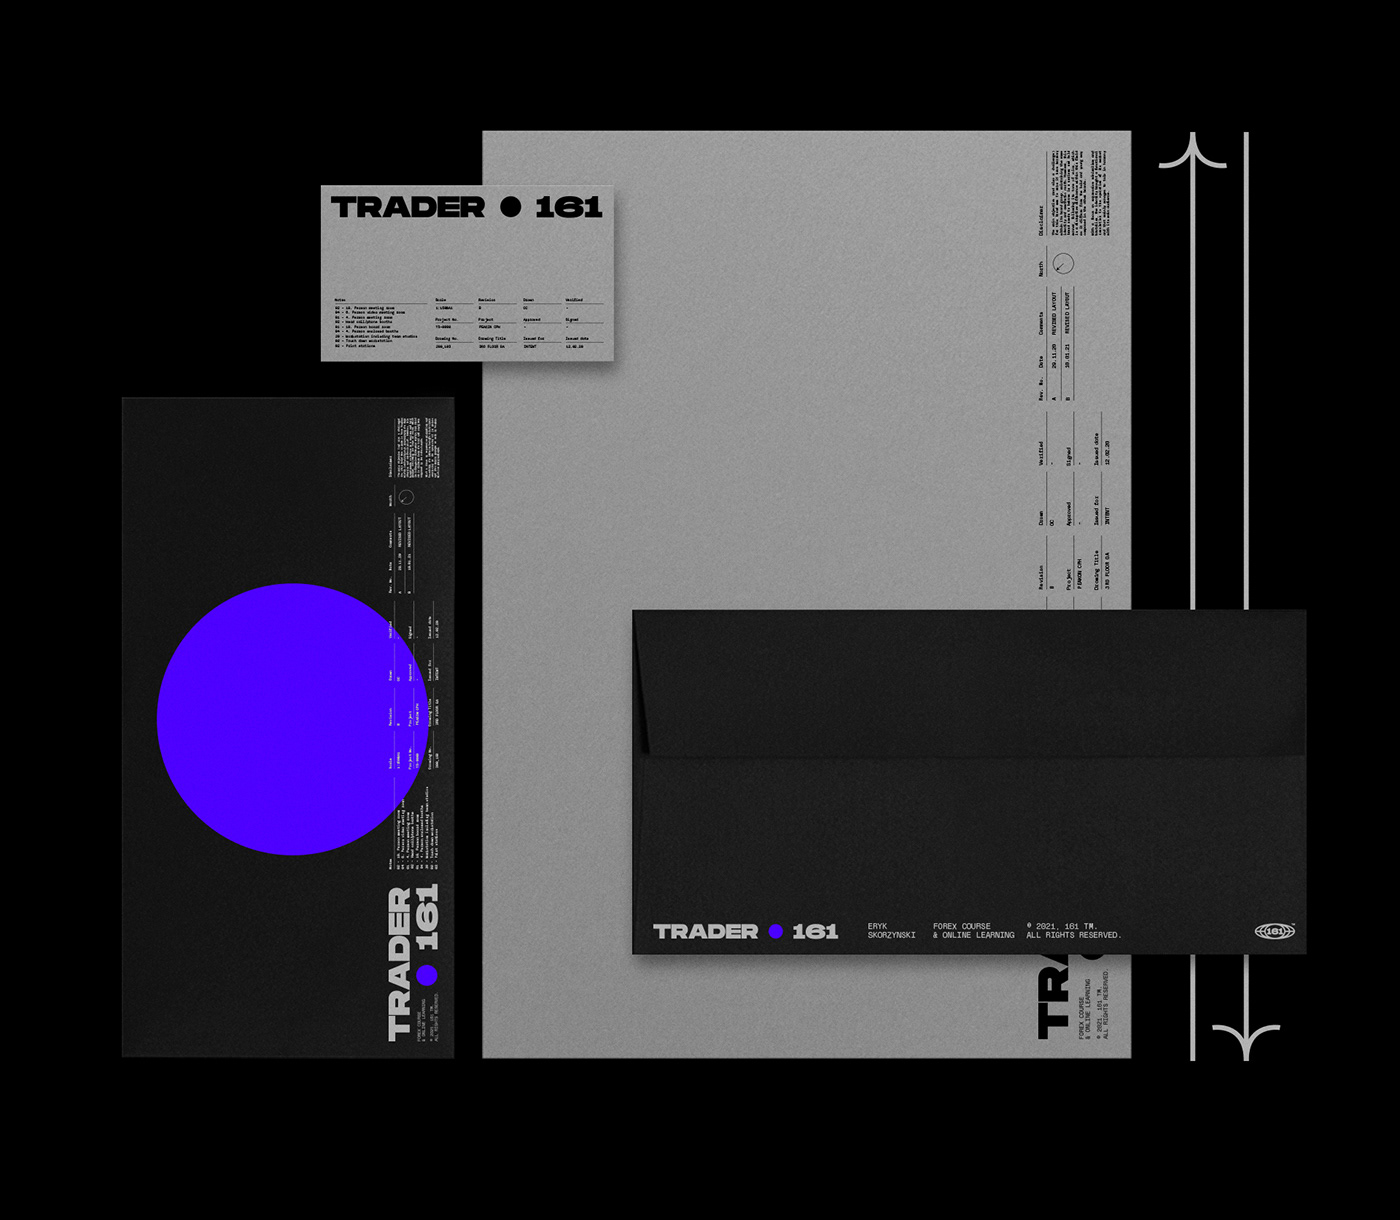 abstract Brutalism futuristic identity Logotype modern poster trading typography   visual identity